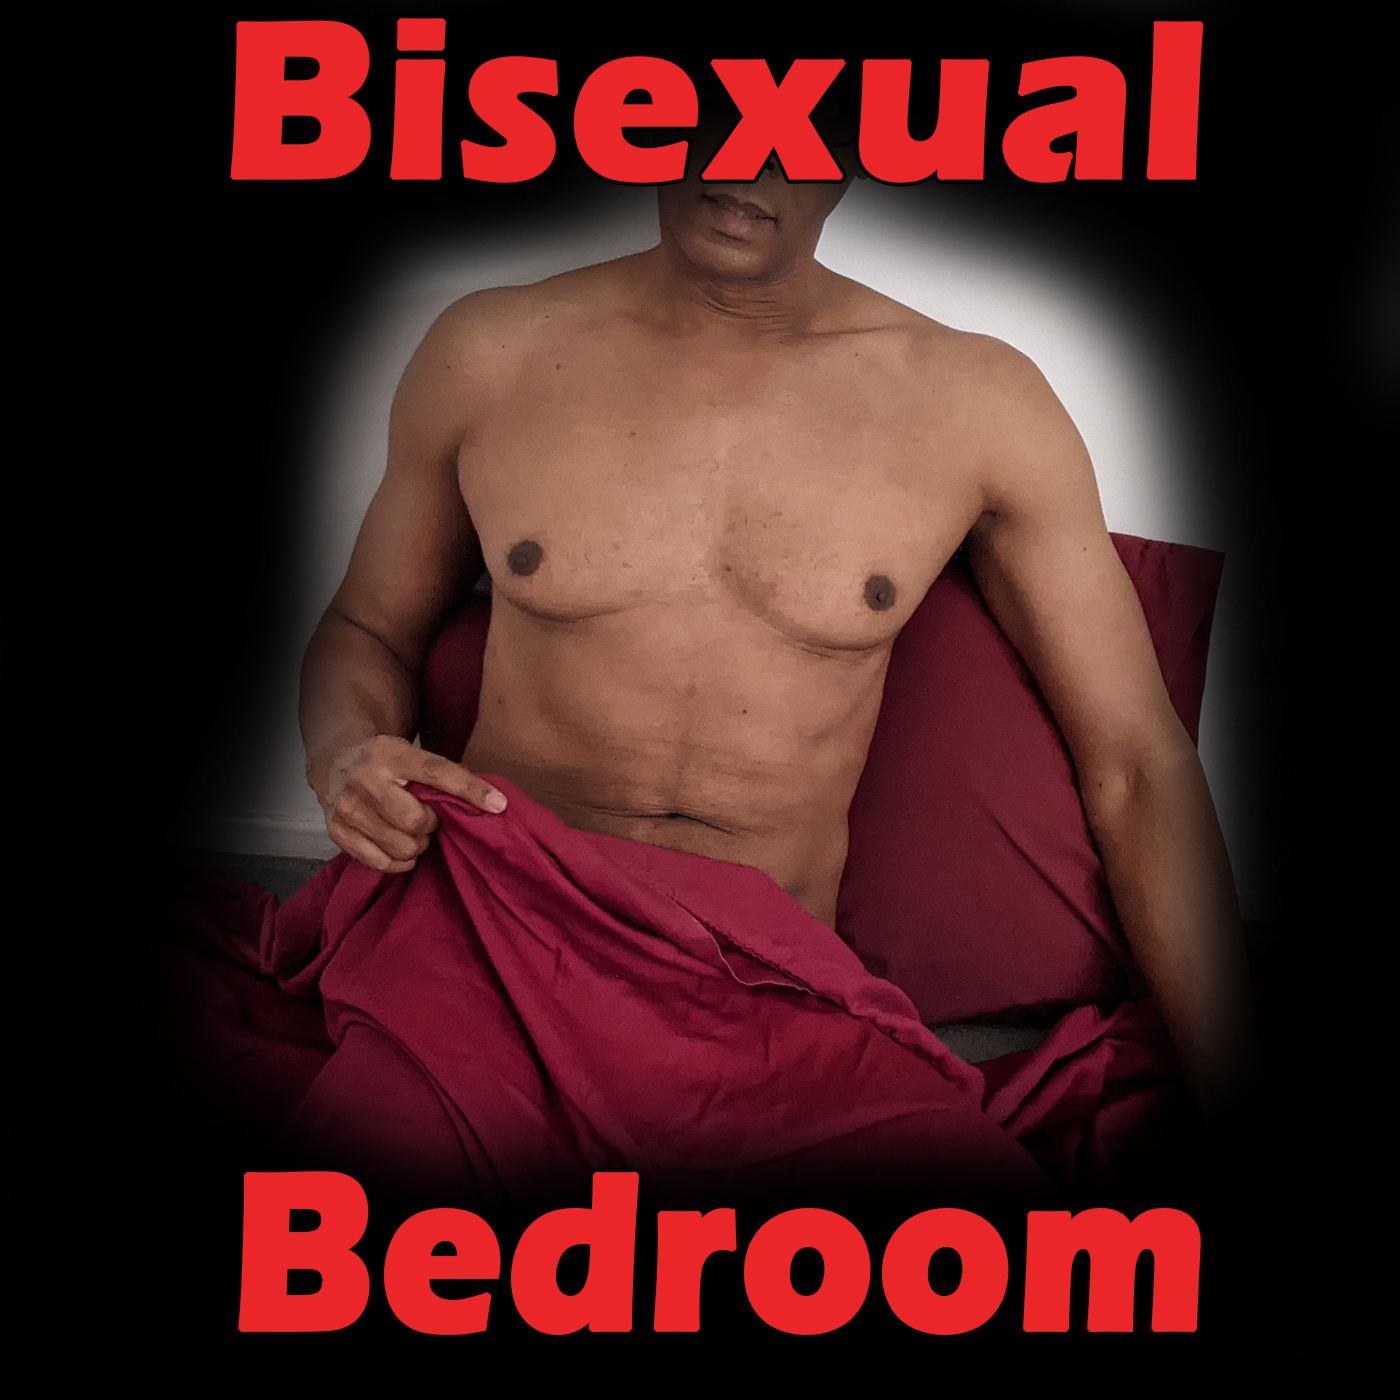 Bisexual Bedroom Issues - Viewer Email